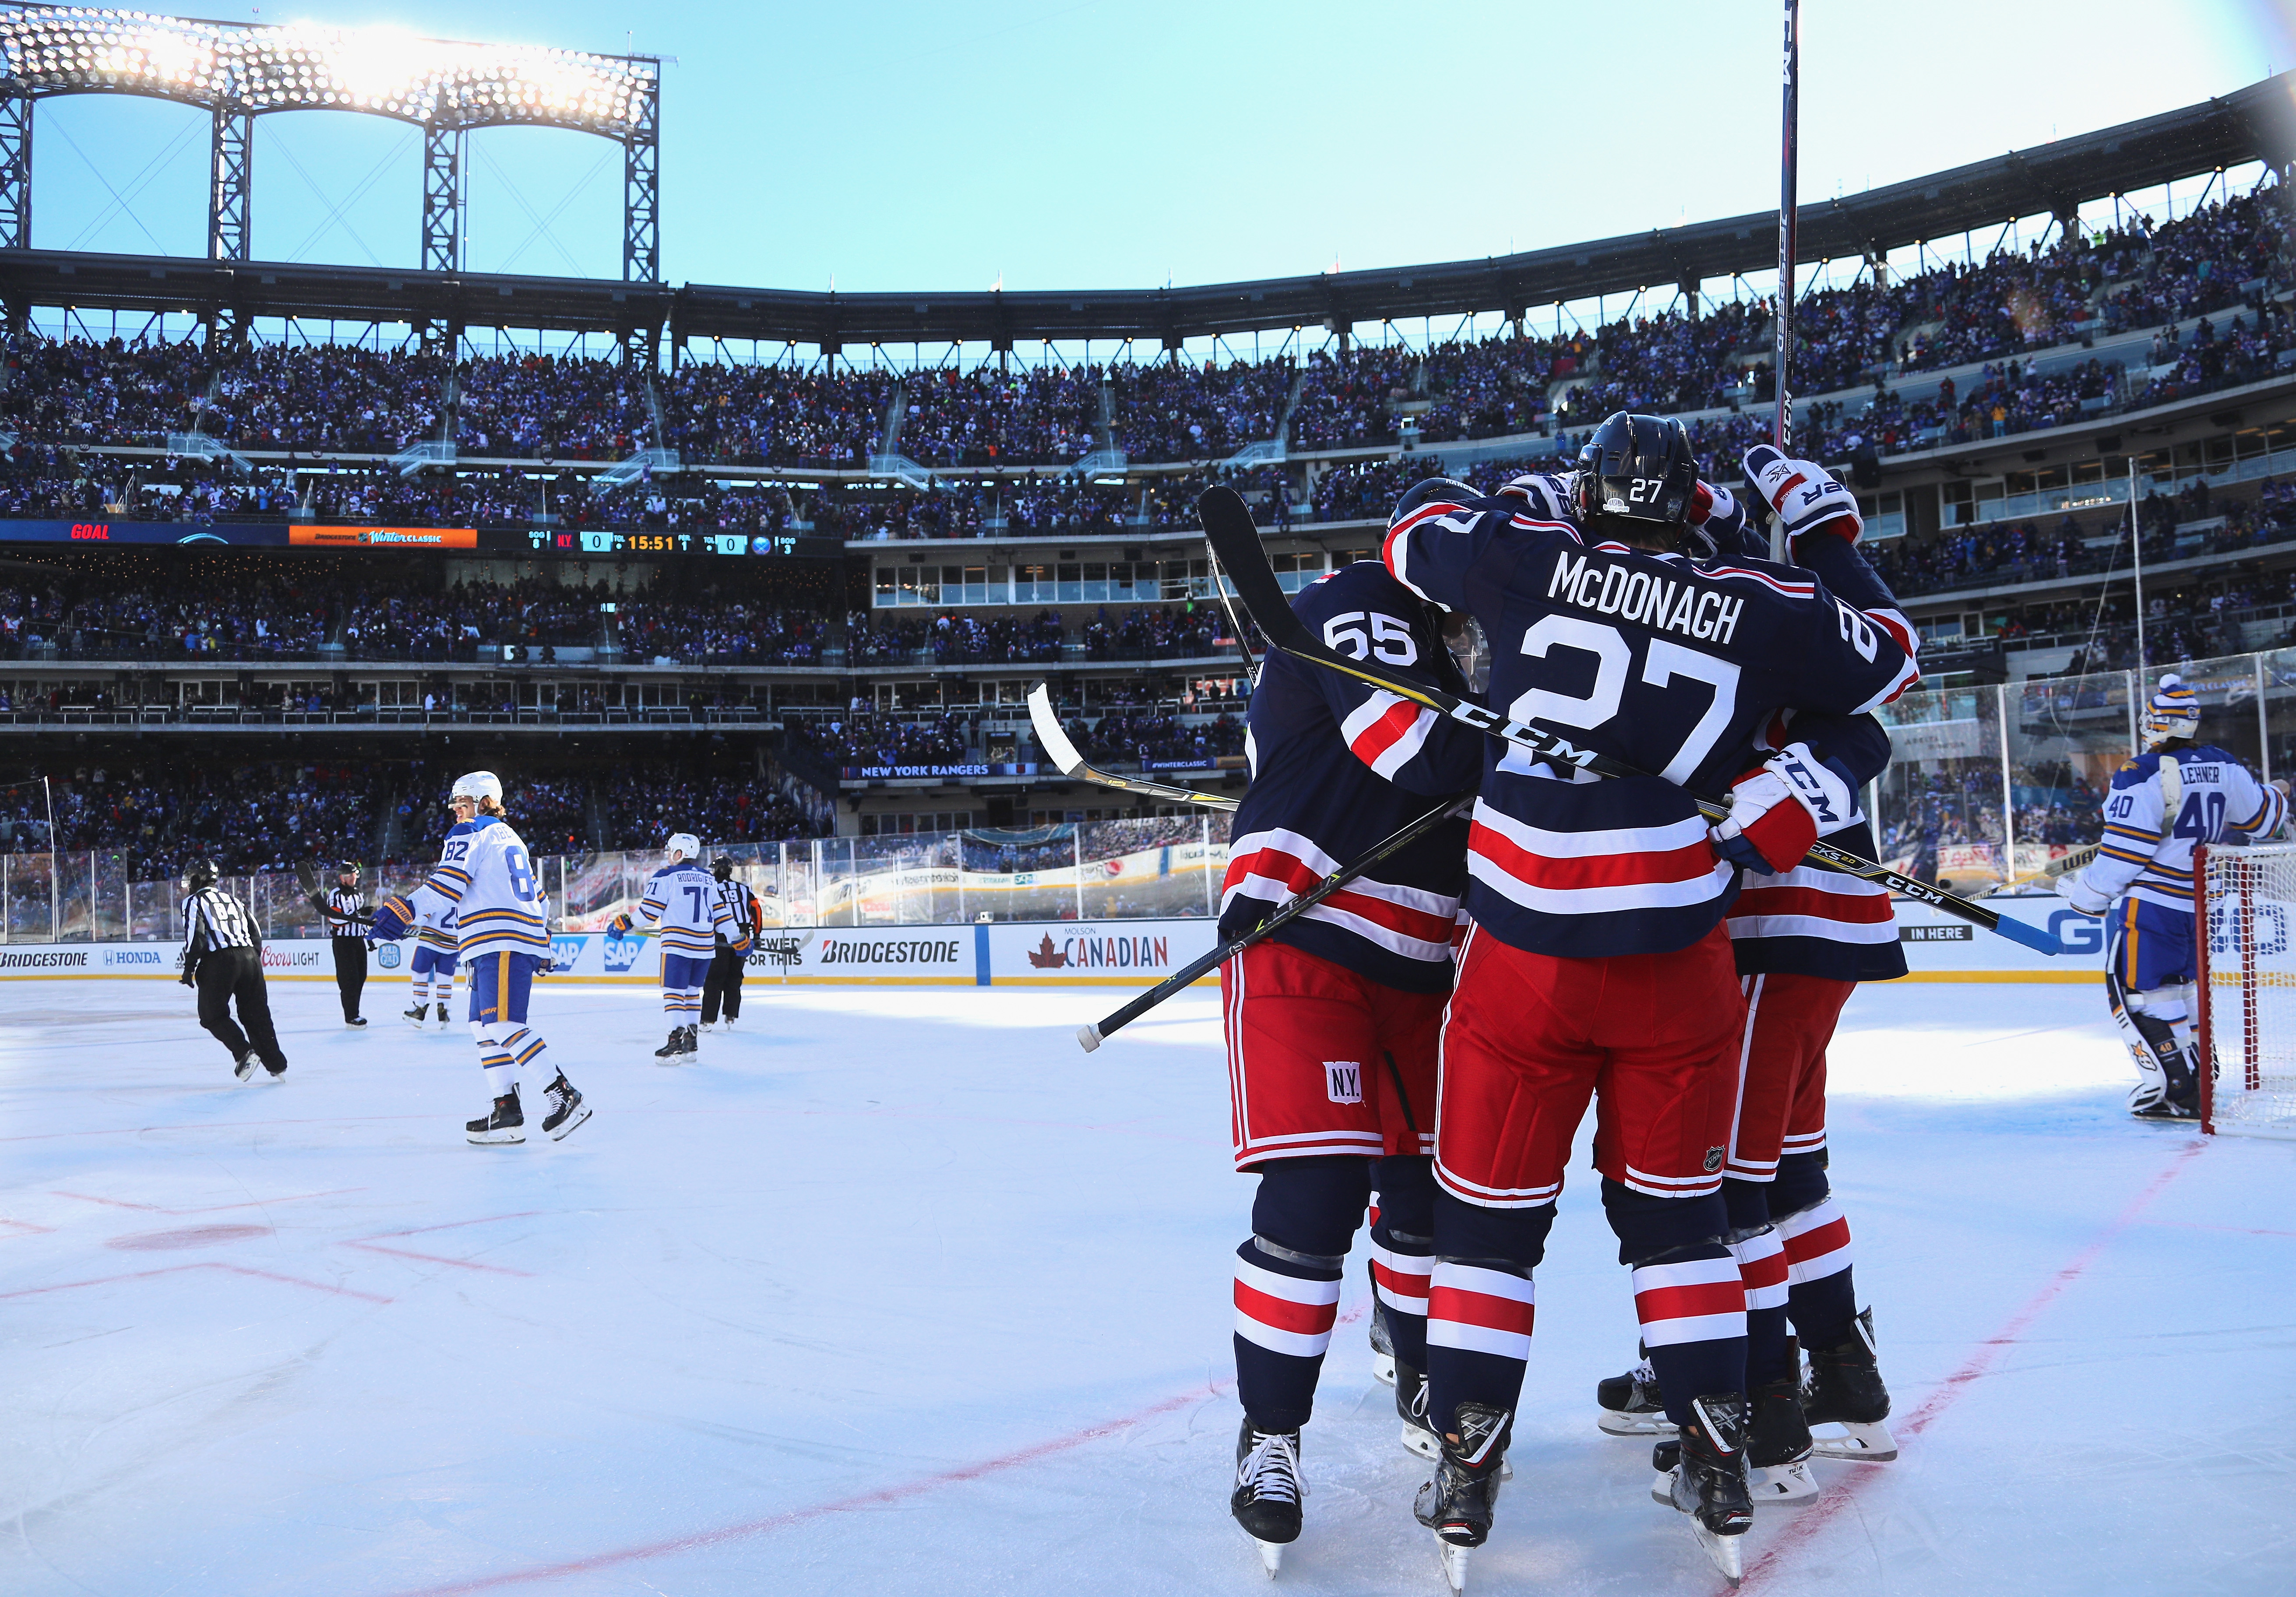 80fb07b41af8dc 2018 Winter Classic: The best outdoor photos of the Sabres vs ...